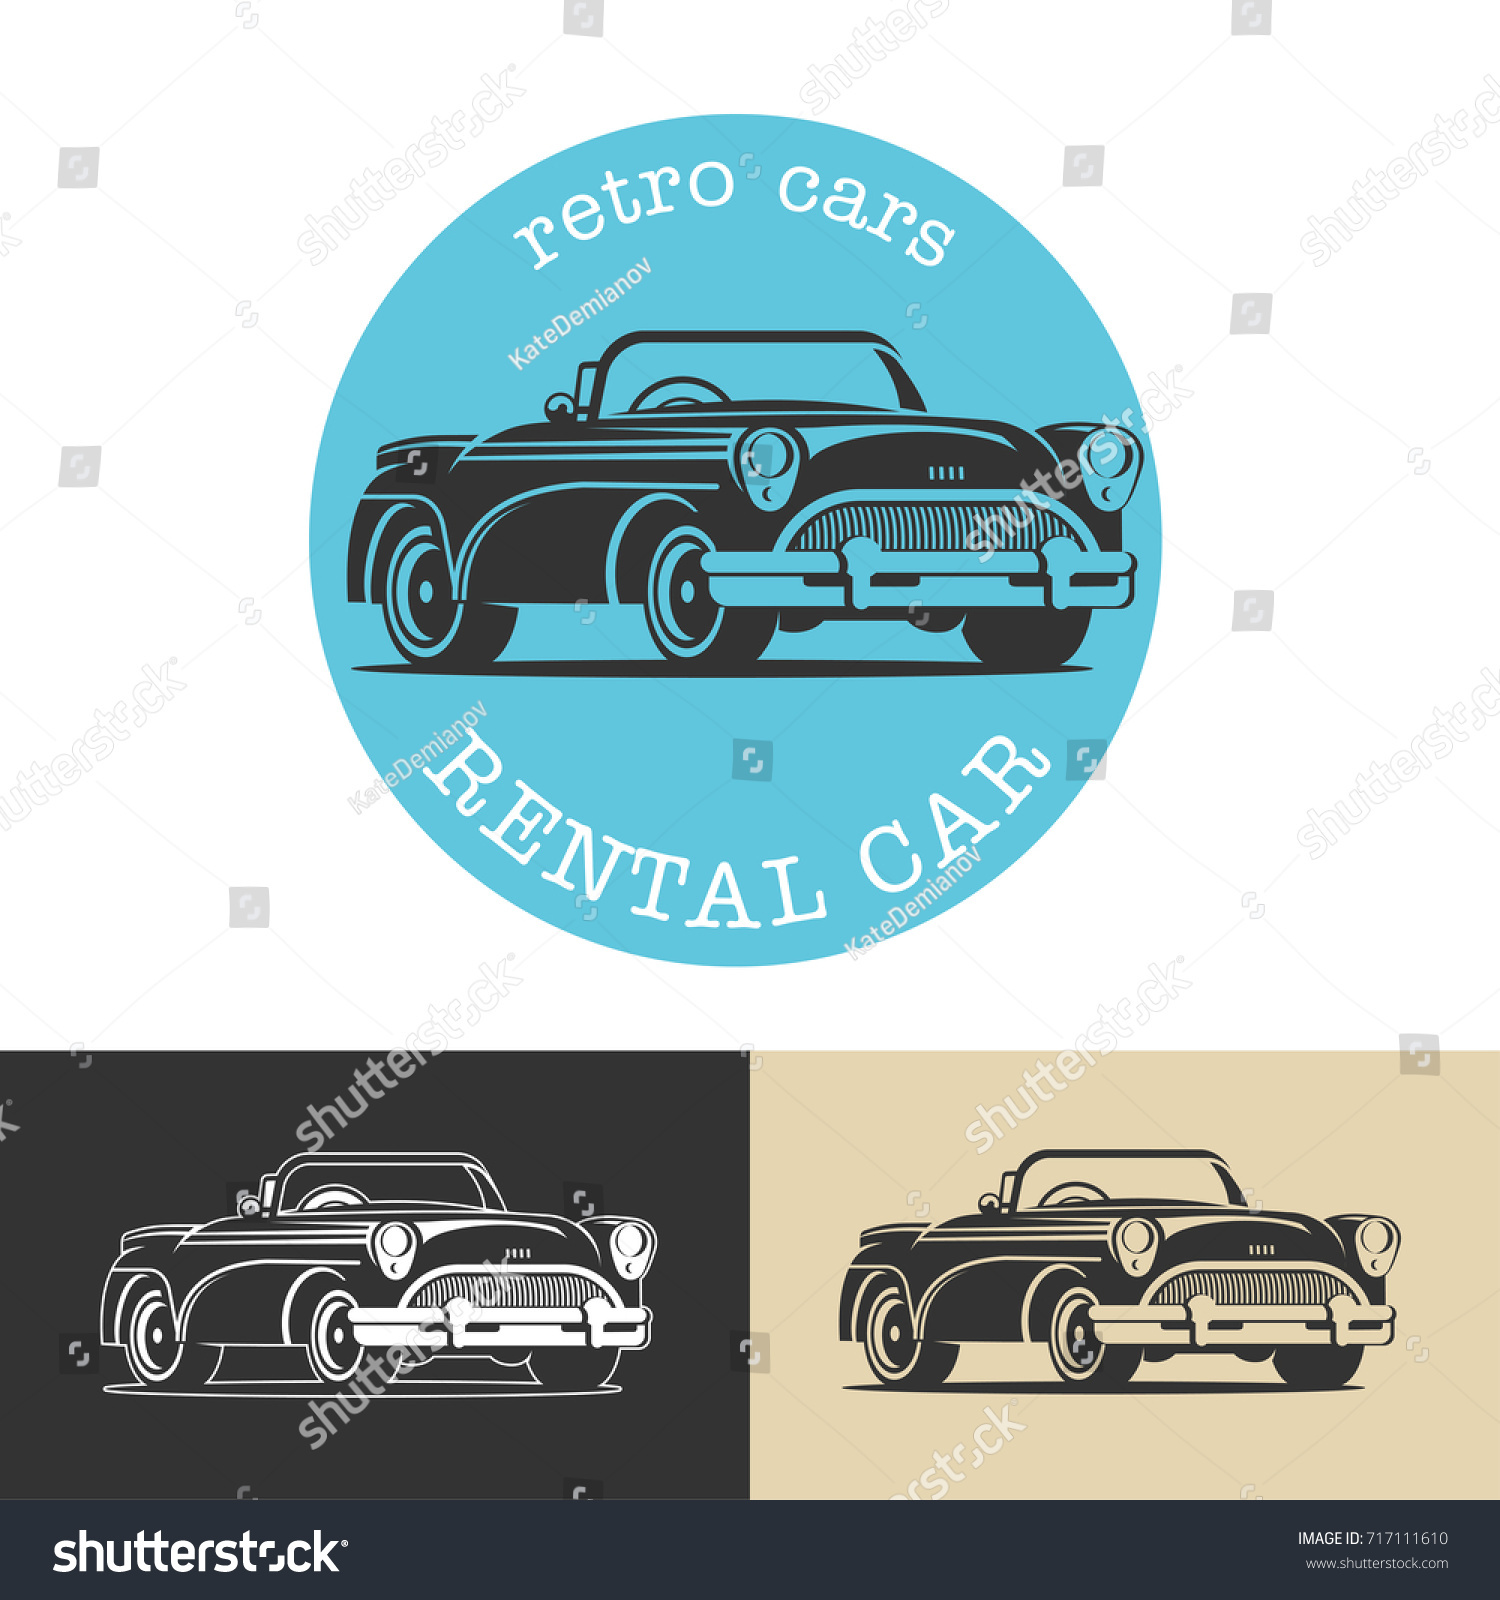 Vintage Car Black Vector Sign Logo Stock Vector 717111610 - Shutterstock